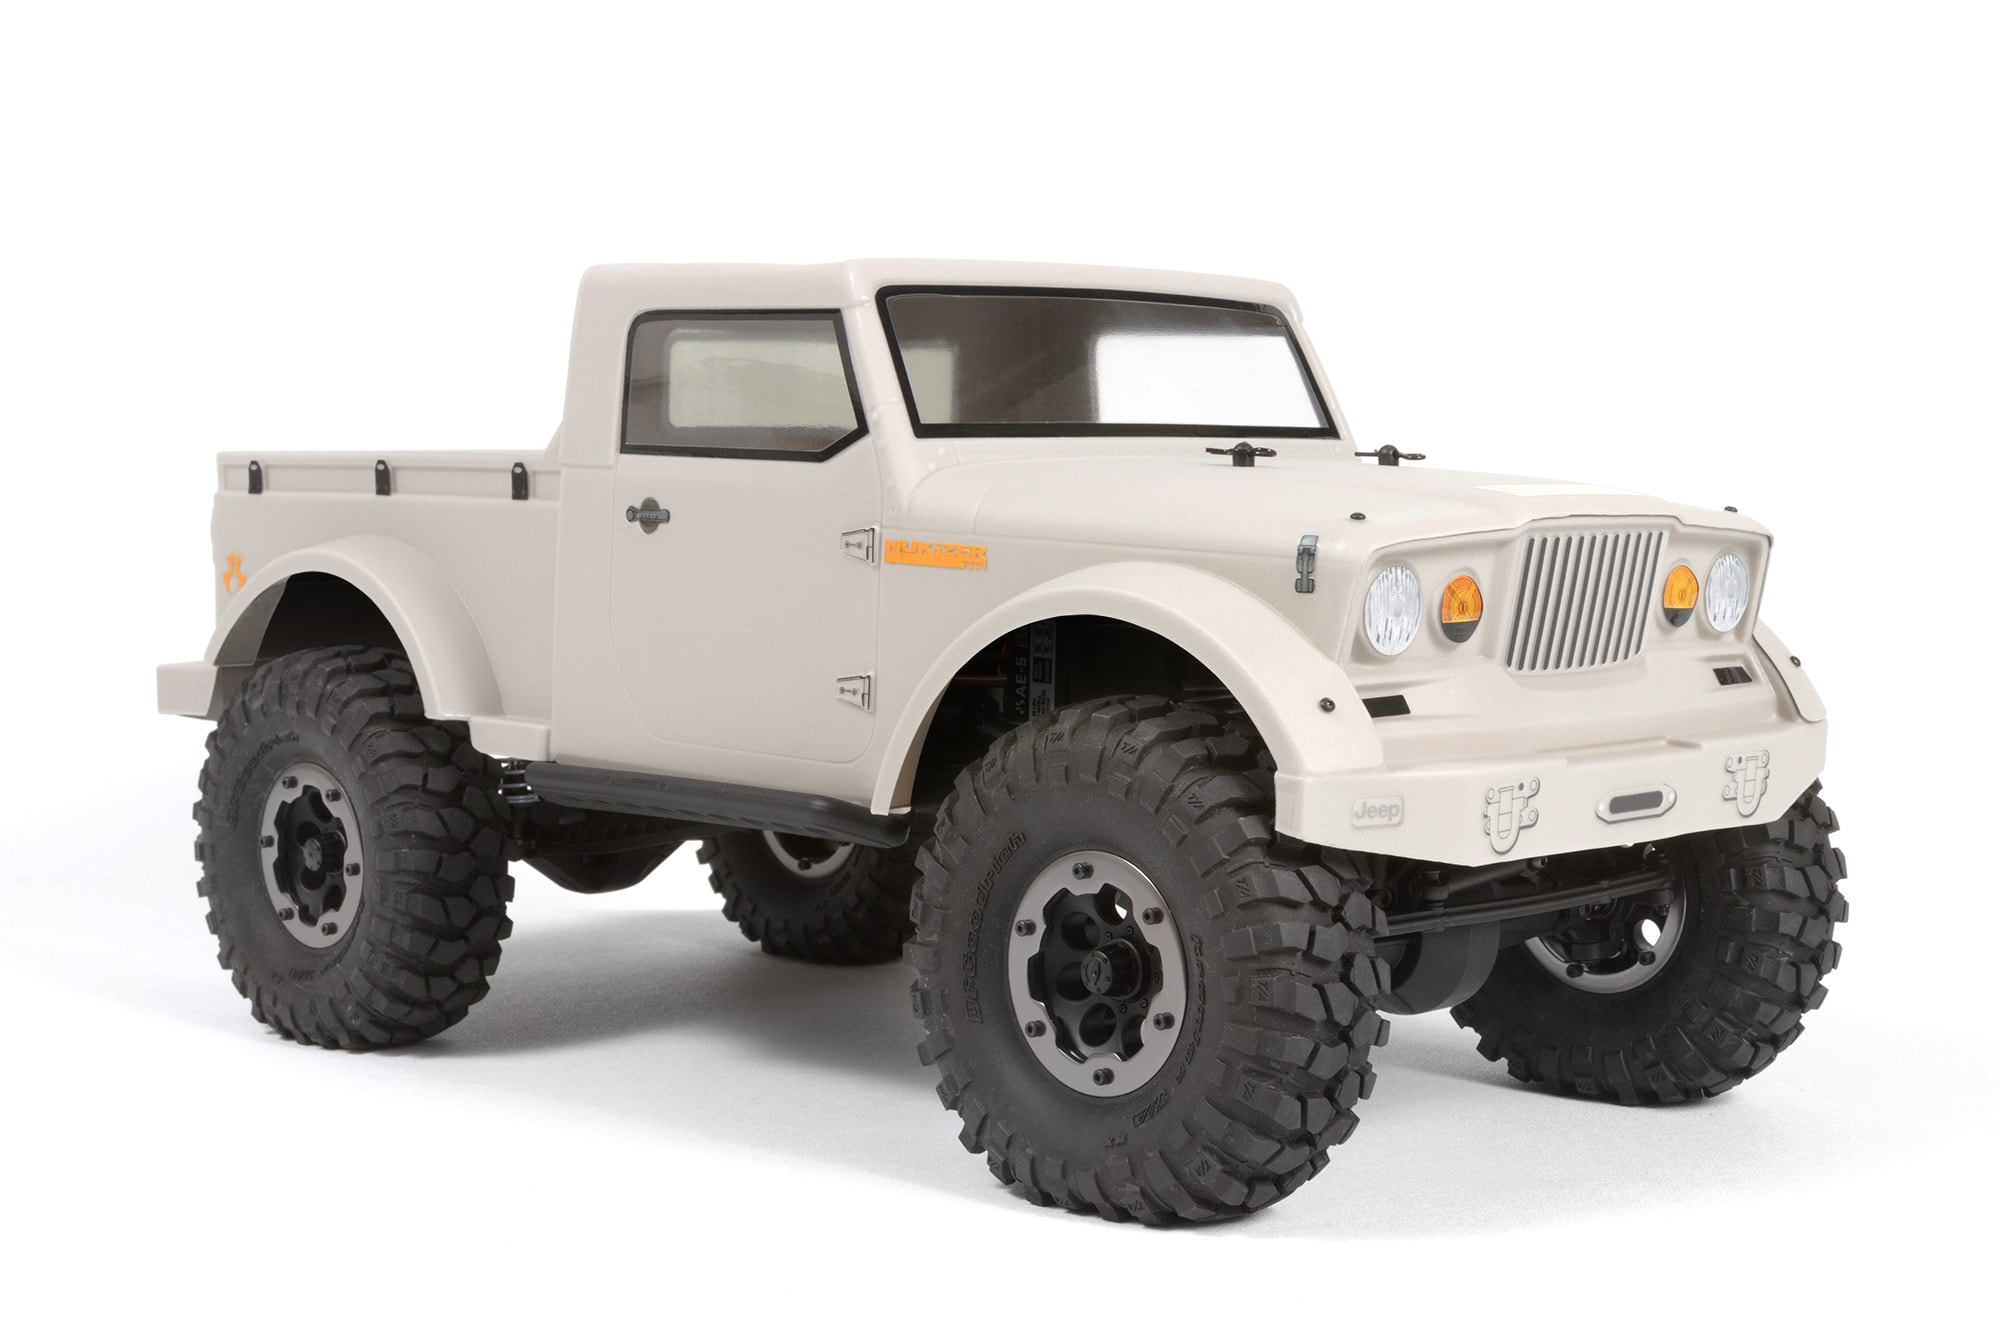 Axial Releases the Jeep NuKizer 715 & Jeep Mighty FC Bodies